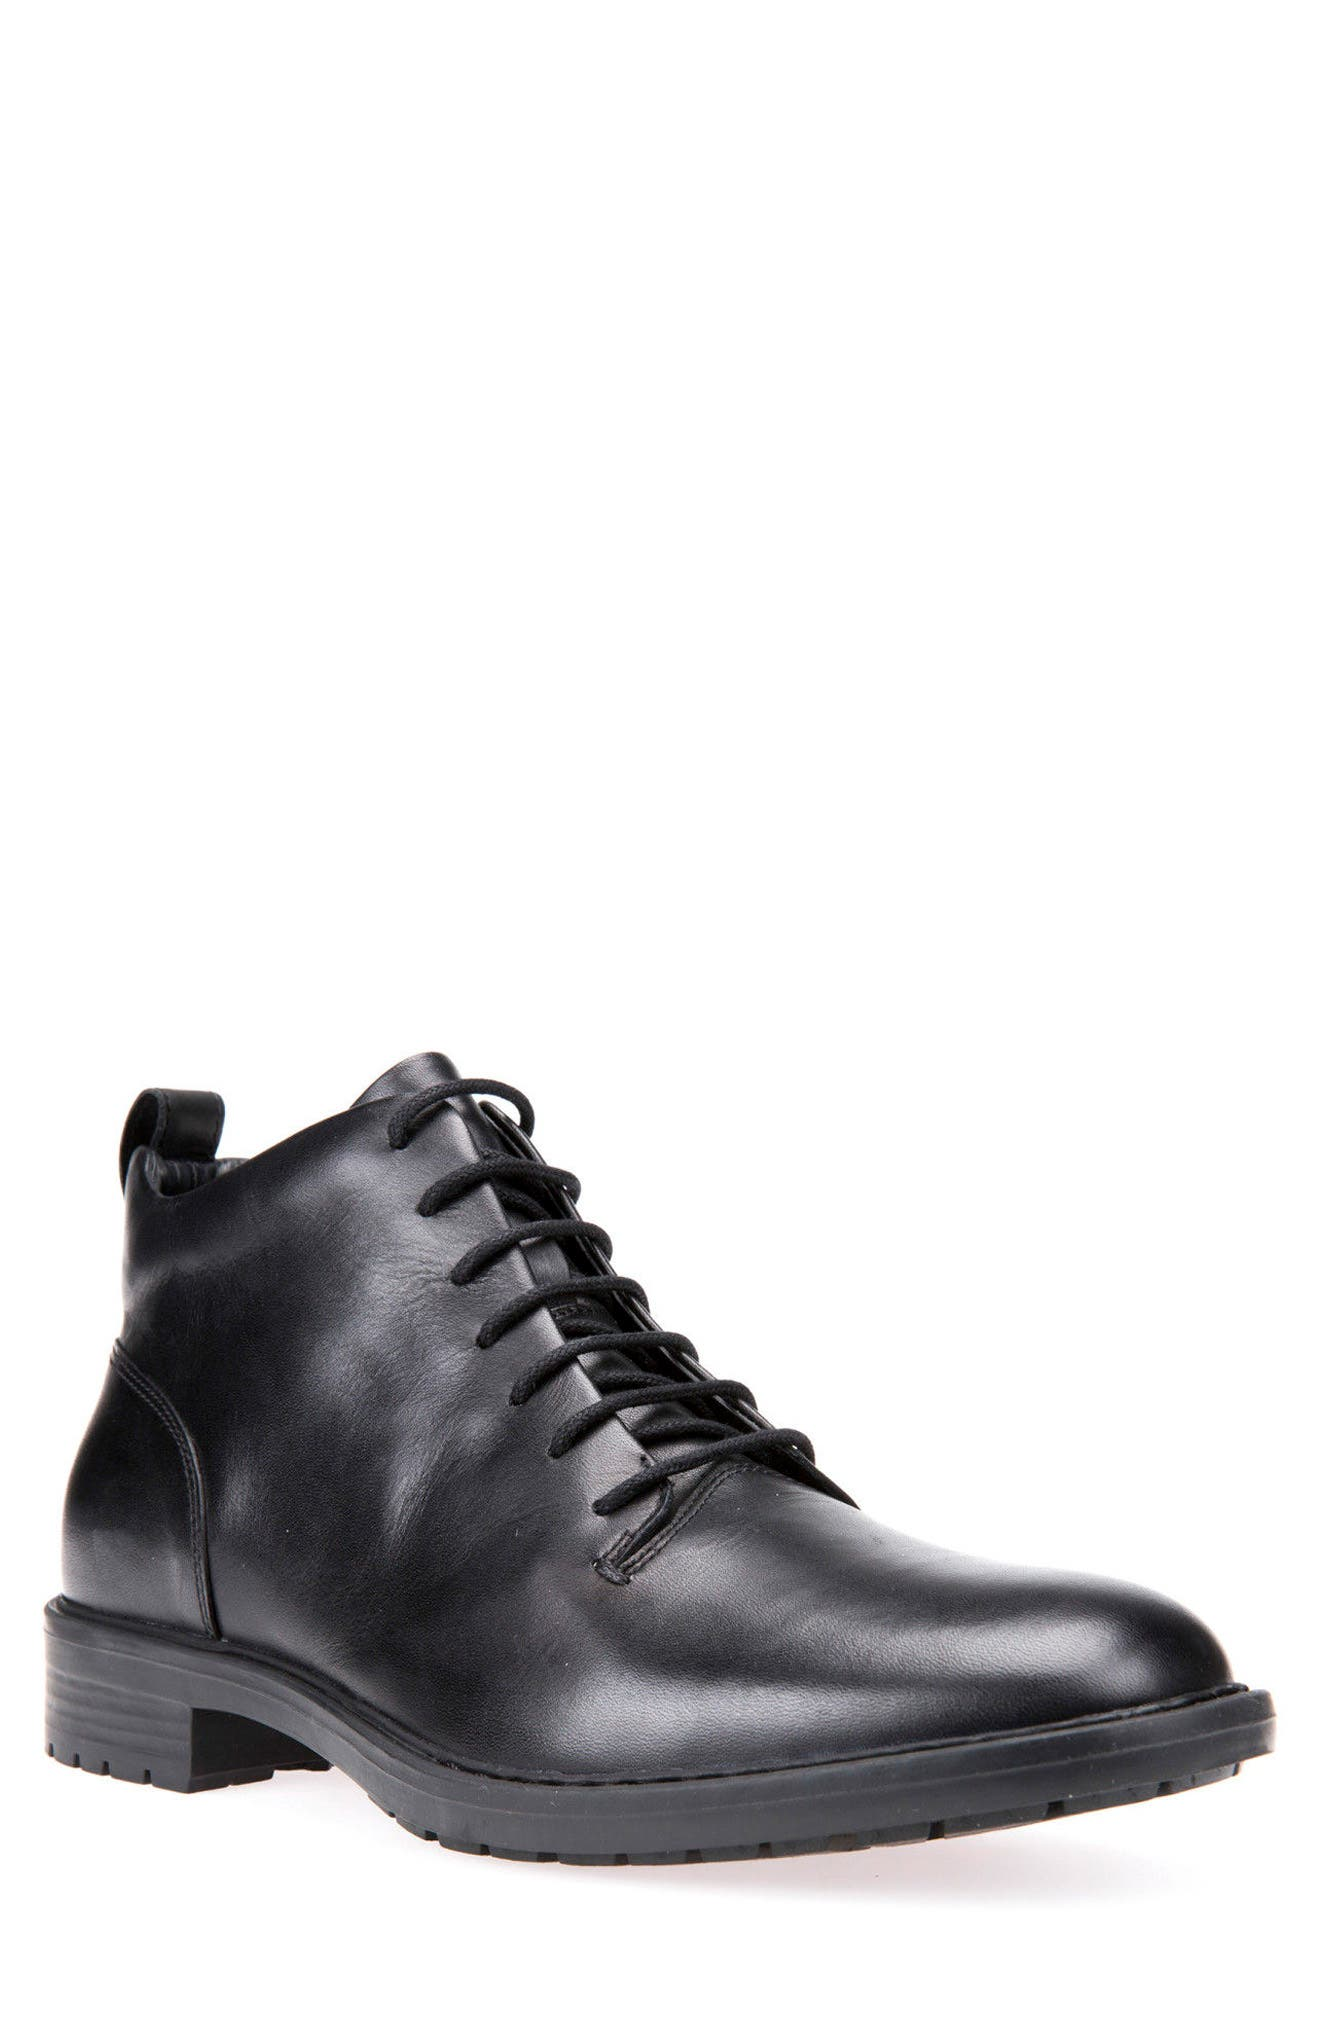 main image geox kapsian plain toe boot men